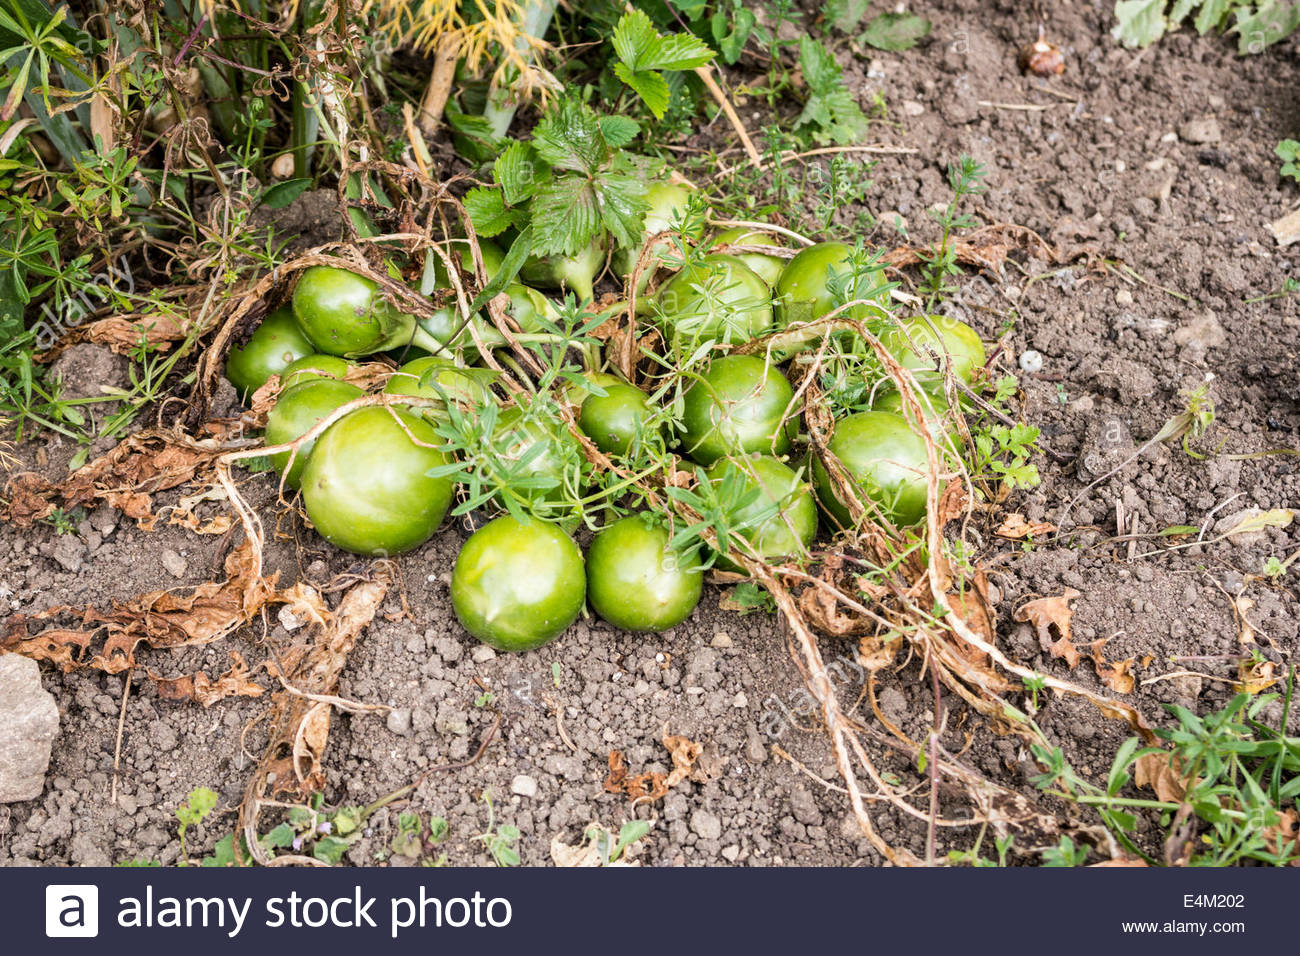 Fruit Of The Mandrake Plant Mandragora Officinarum Stock Photo